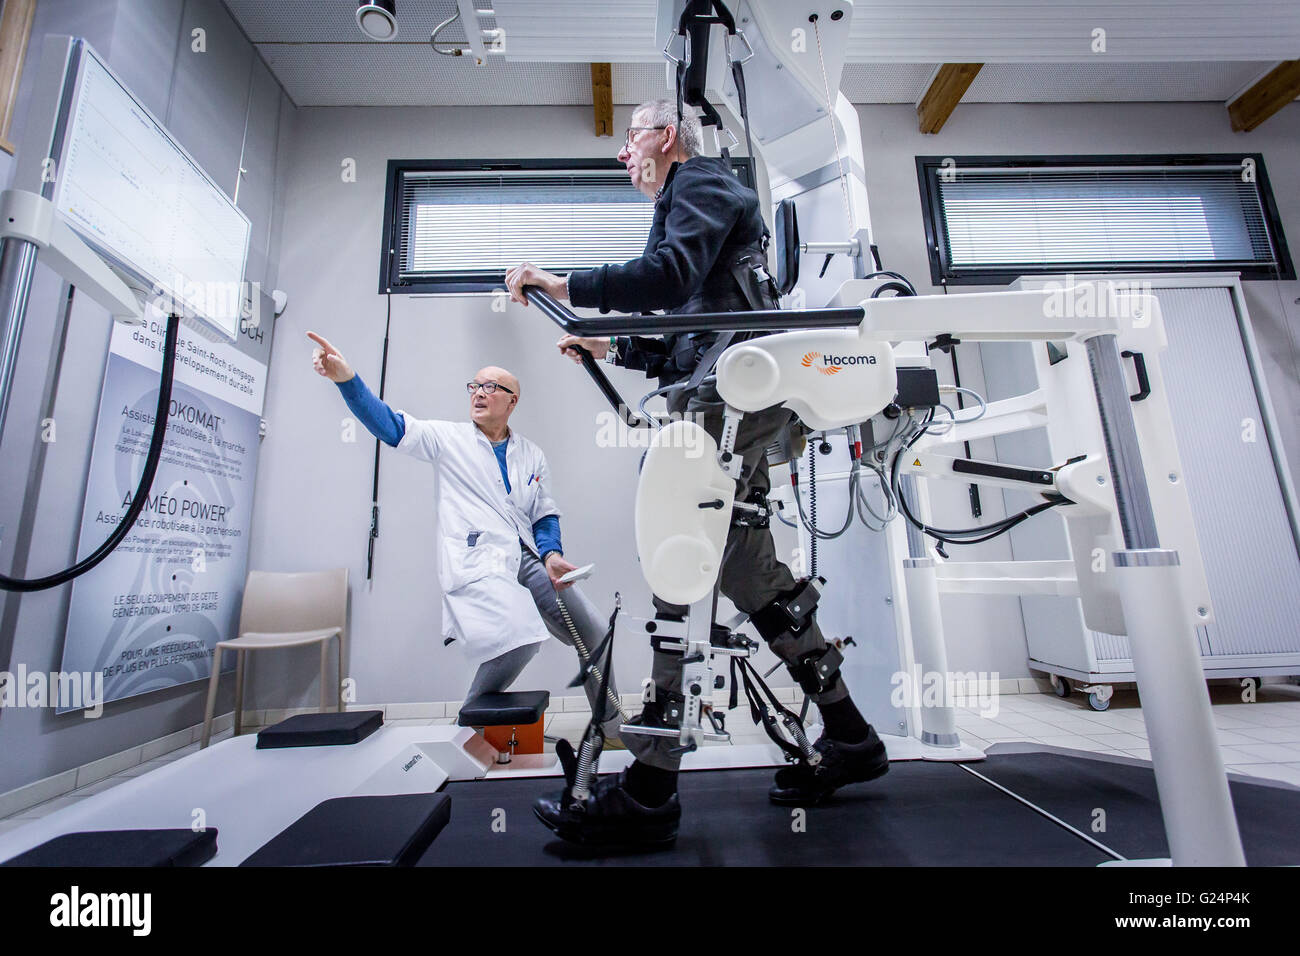 Robotic assistance with walking, Patient with multiple plaqueen rehabilitation session with the Lokomat robot - Stock Image